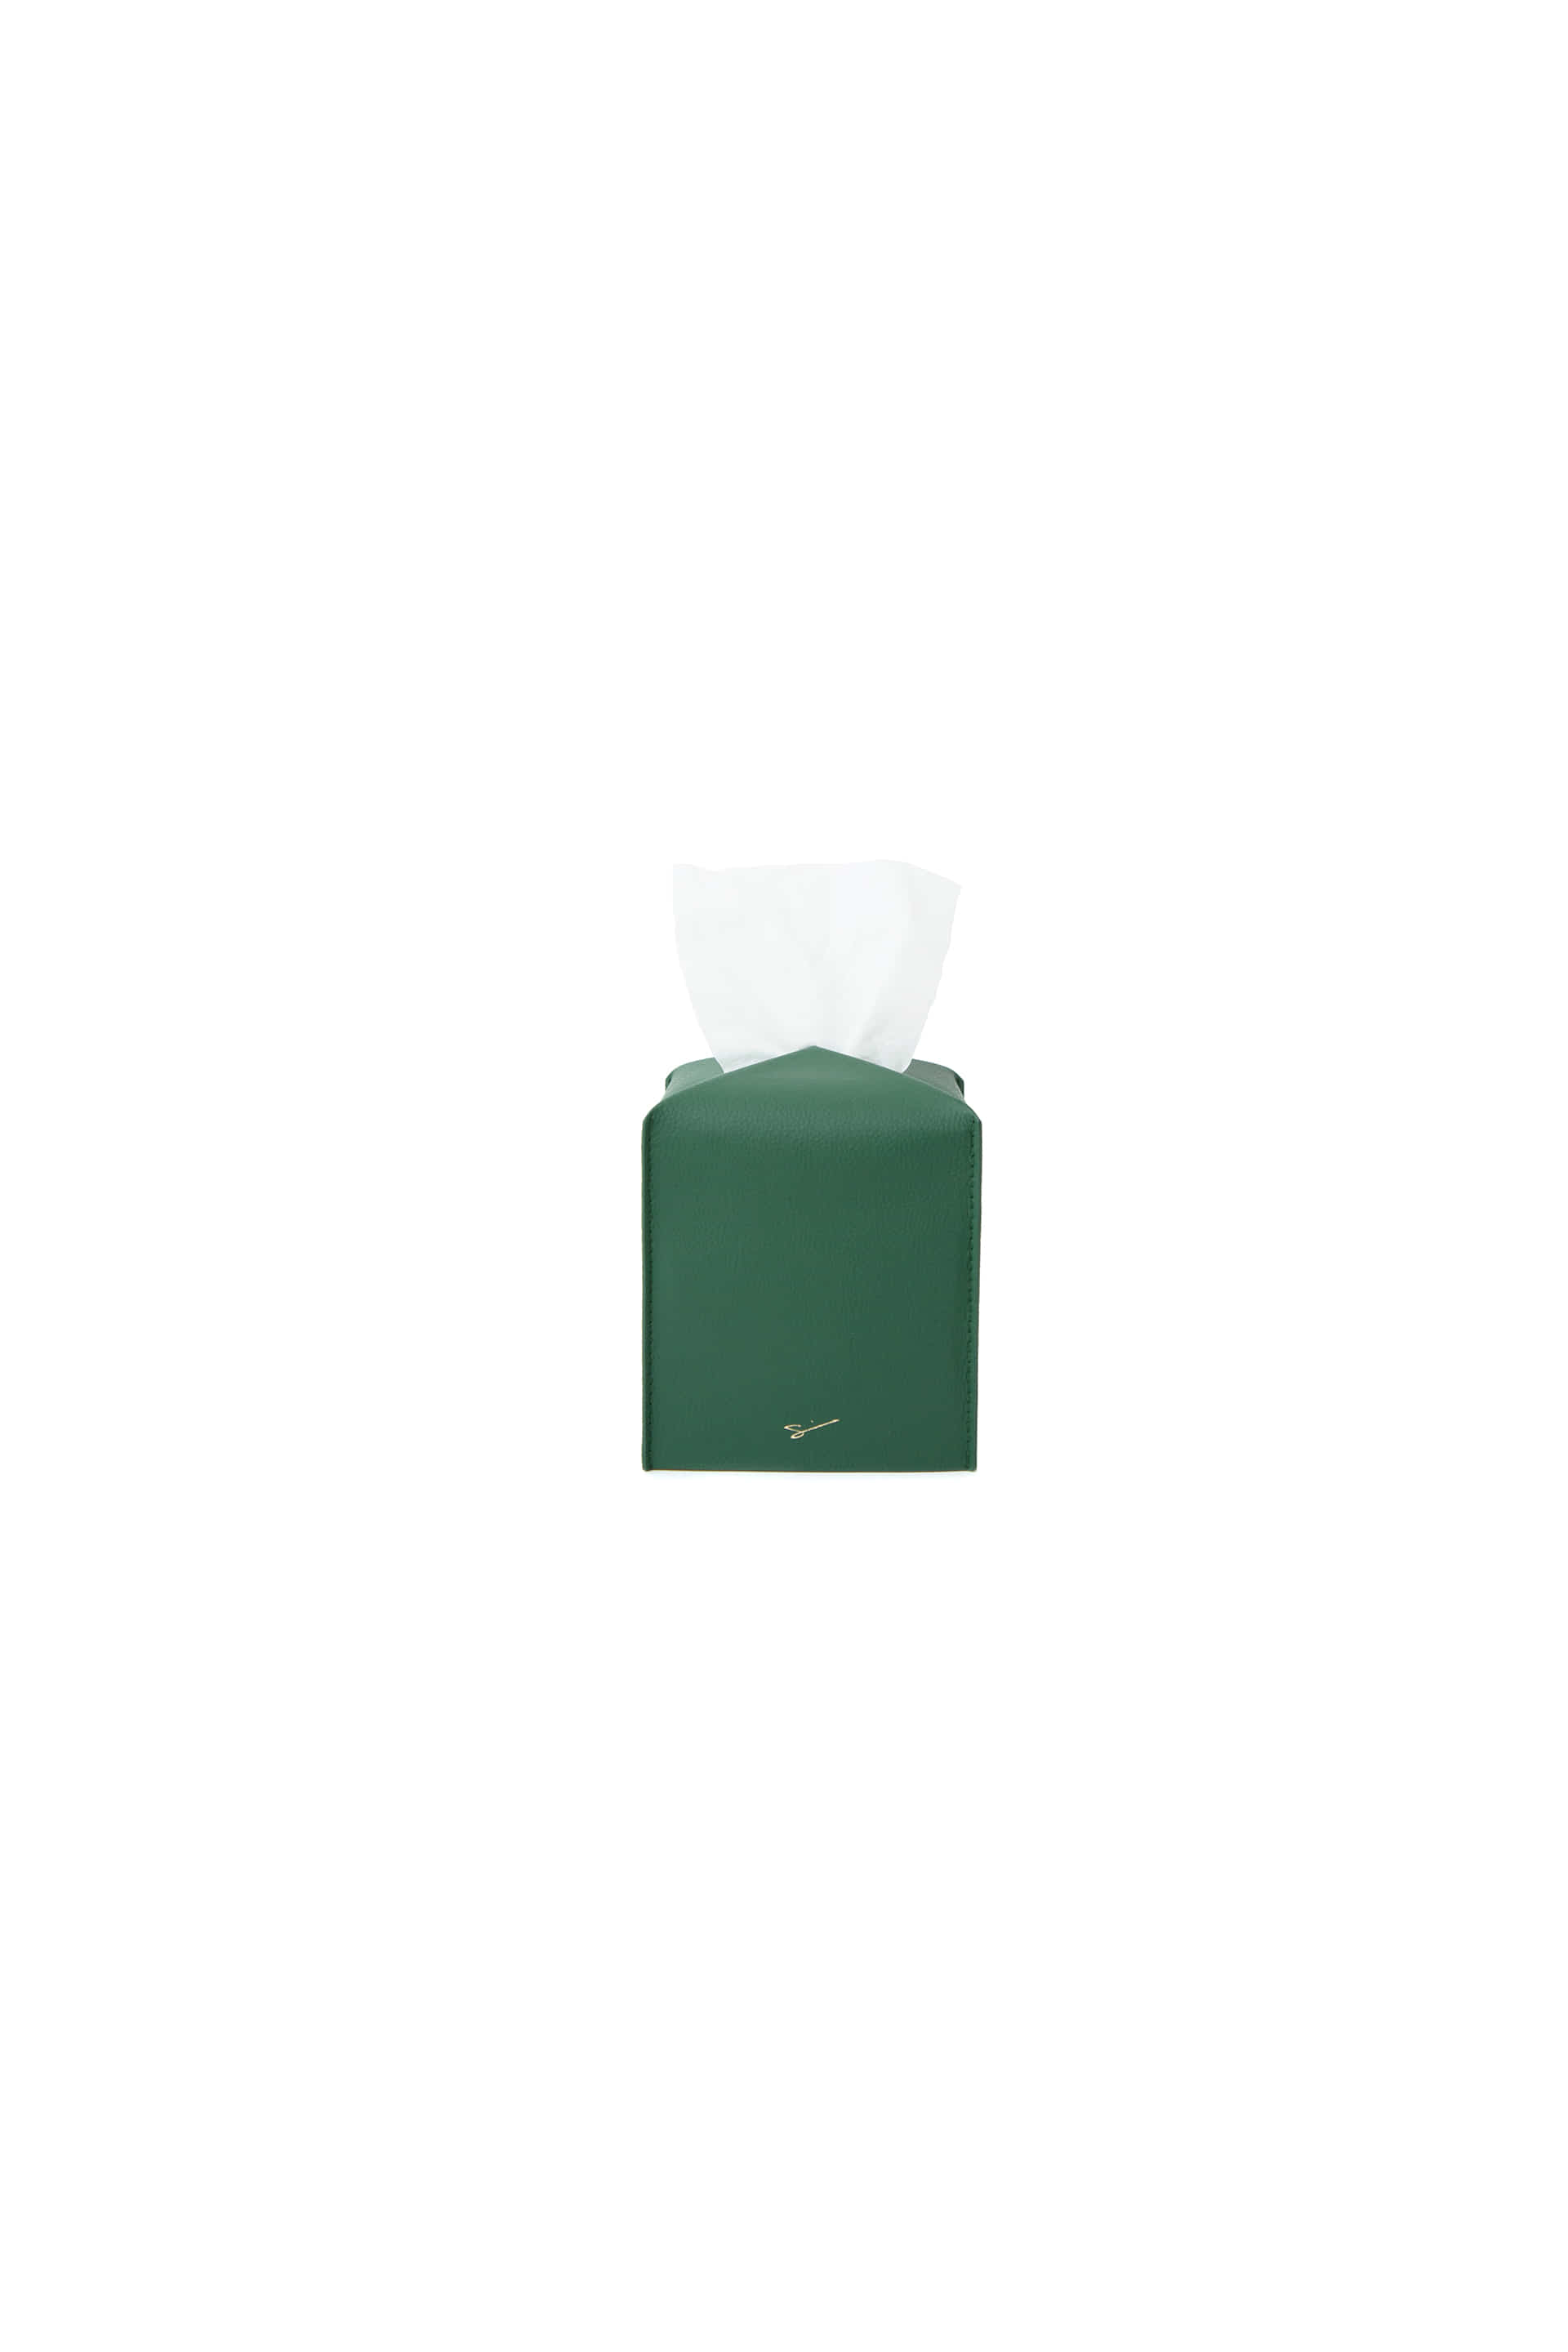 TISSUE CASE S 12 Deep Green